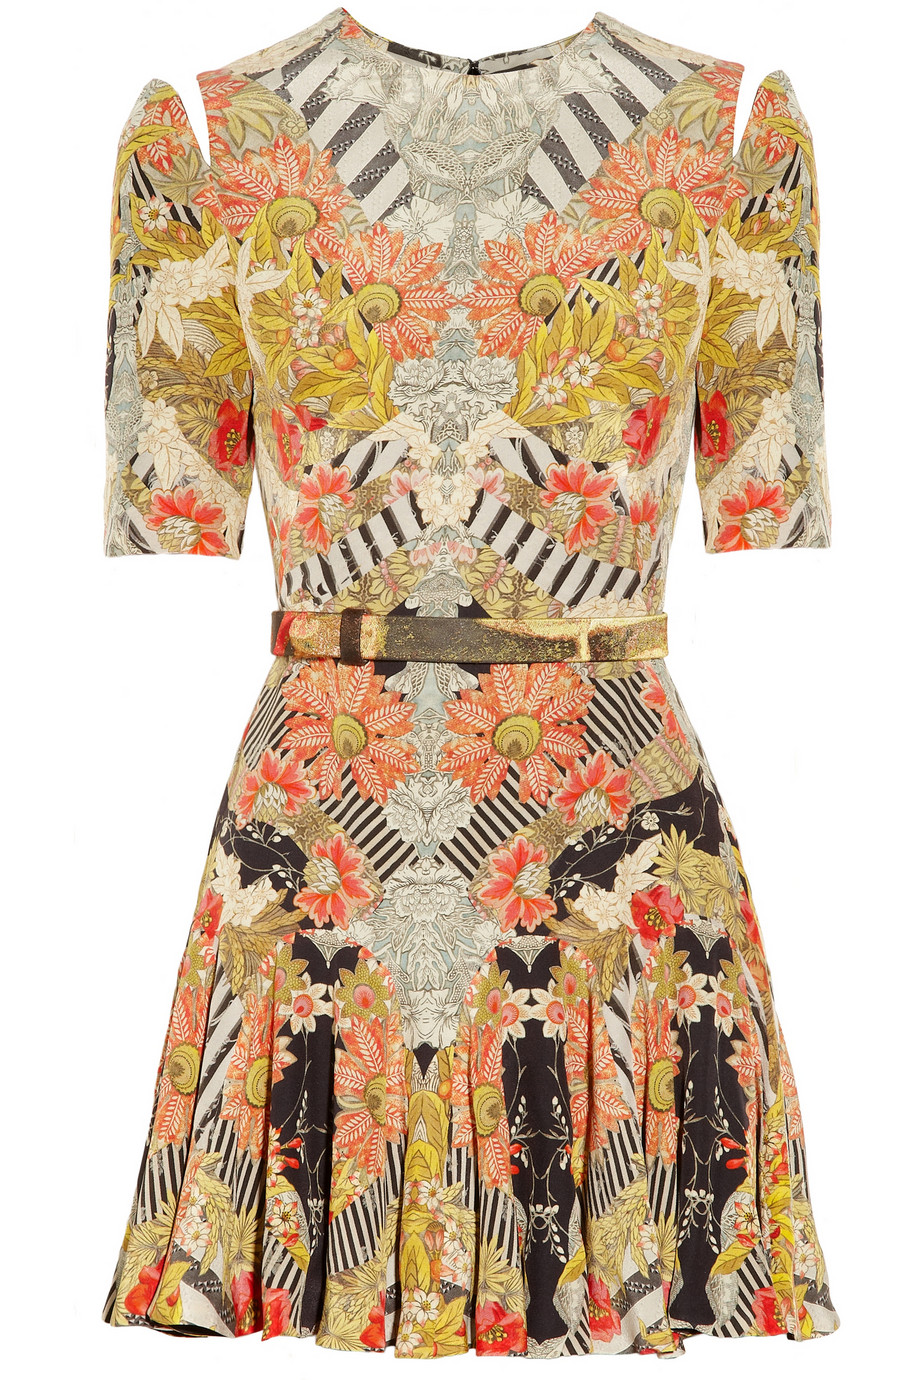 Printed silk dress | Alexander McQueen | 75% off | THE OUTNET